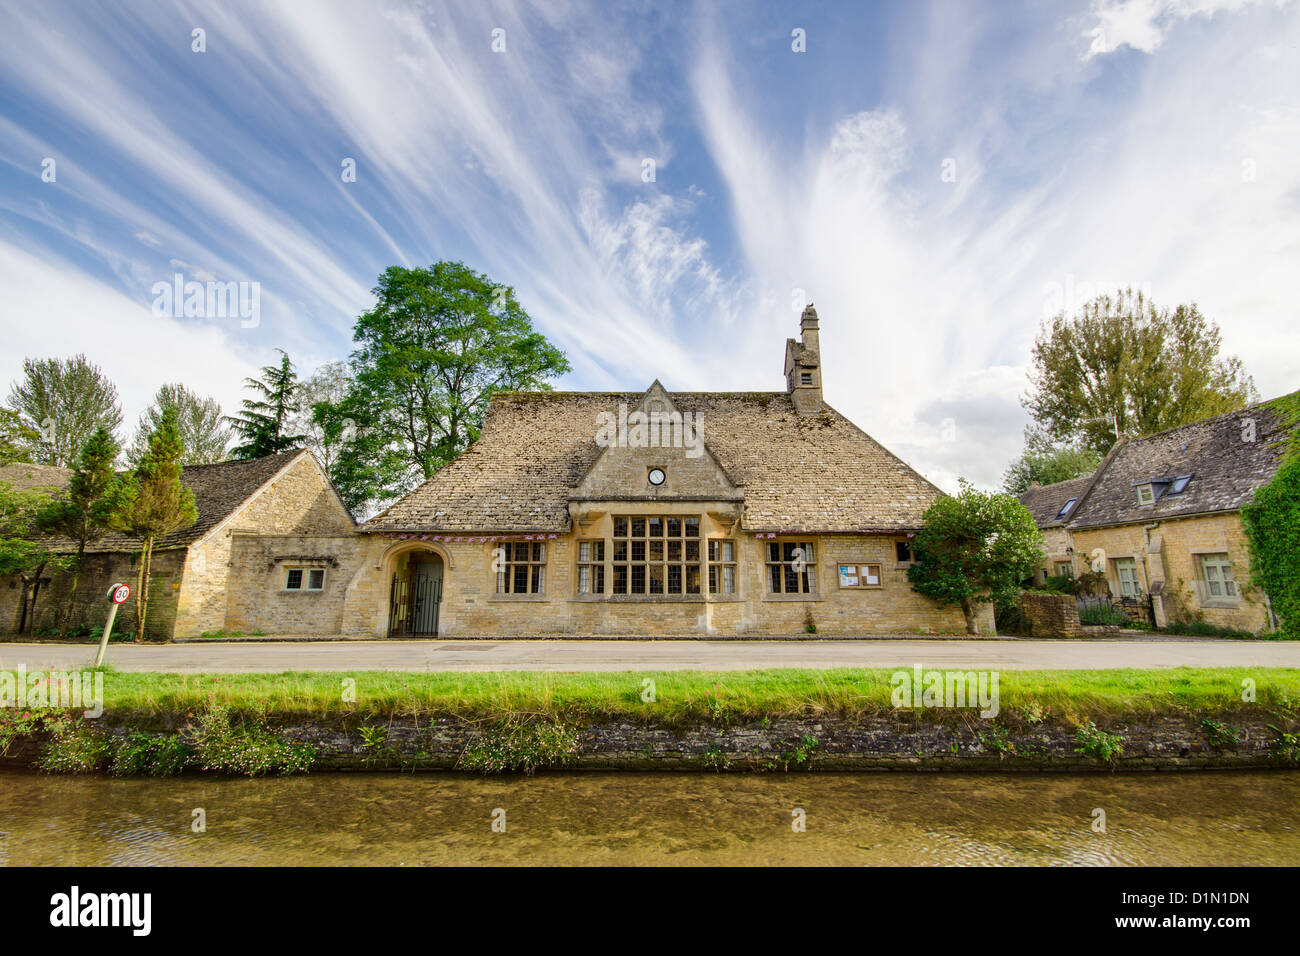 The Village Hall in Lower Slaughter in the Cotswolds - Stock Image